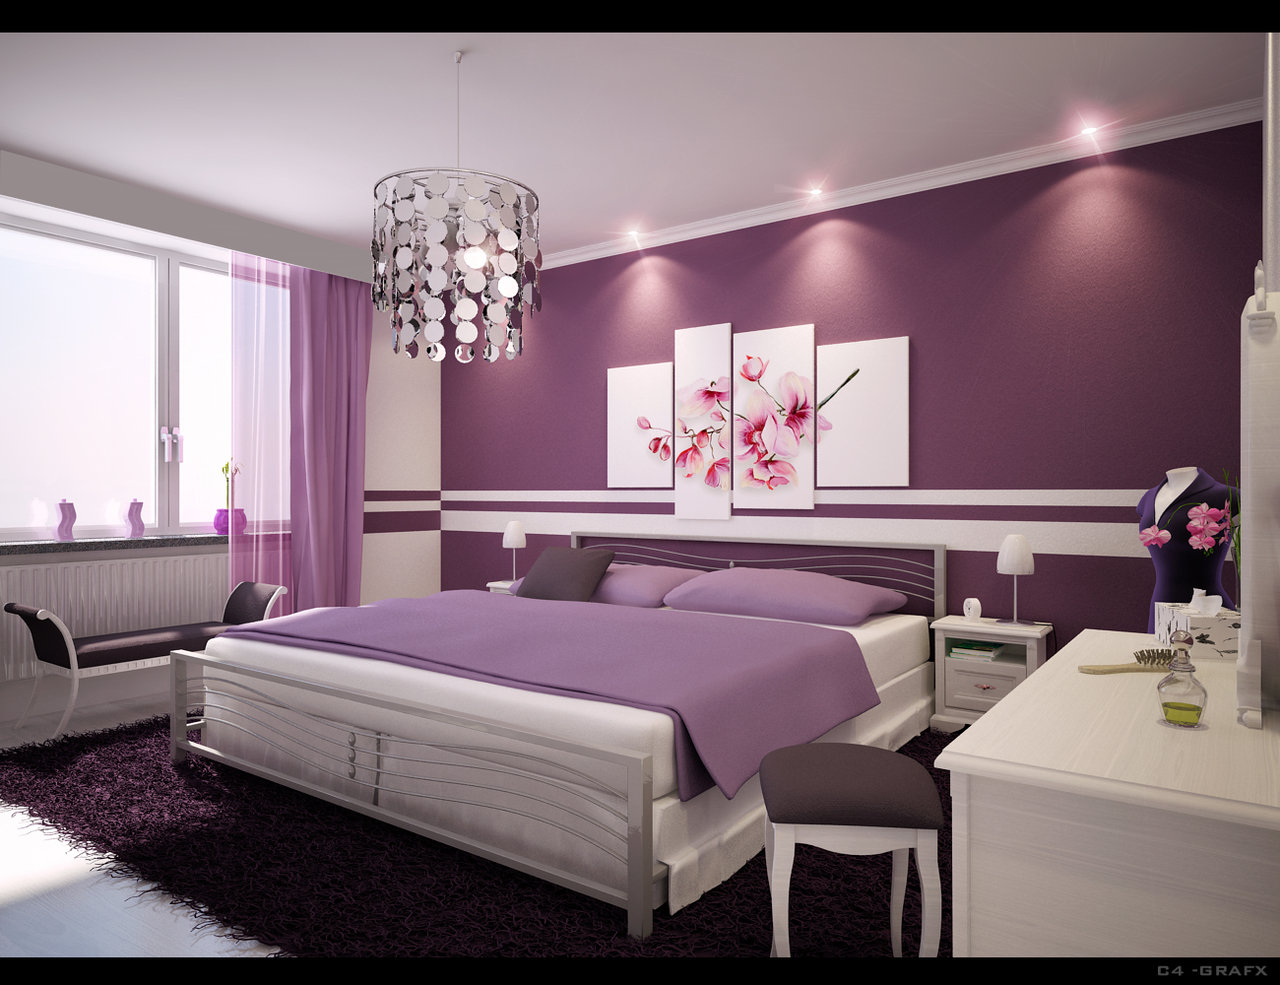 New Dream House Experience 2016: Bedroom Interior Design Ideas